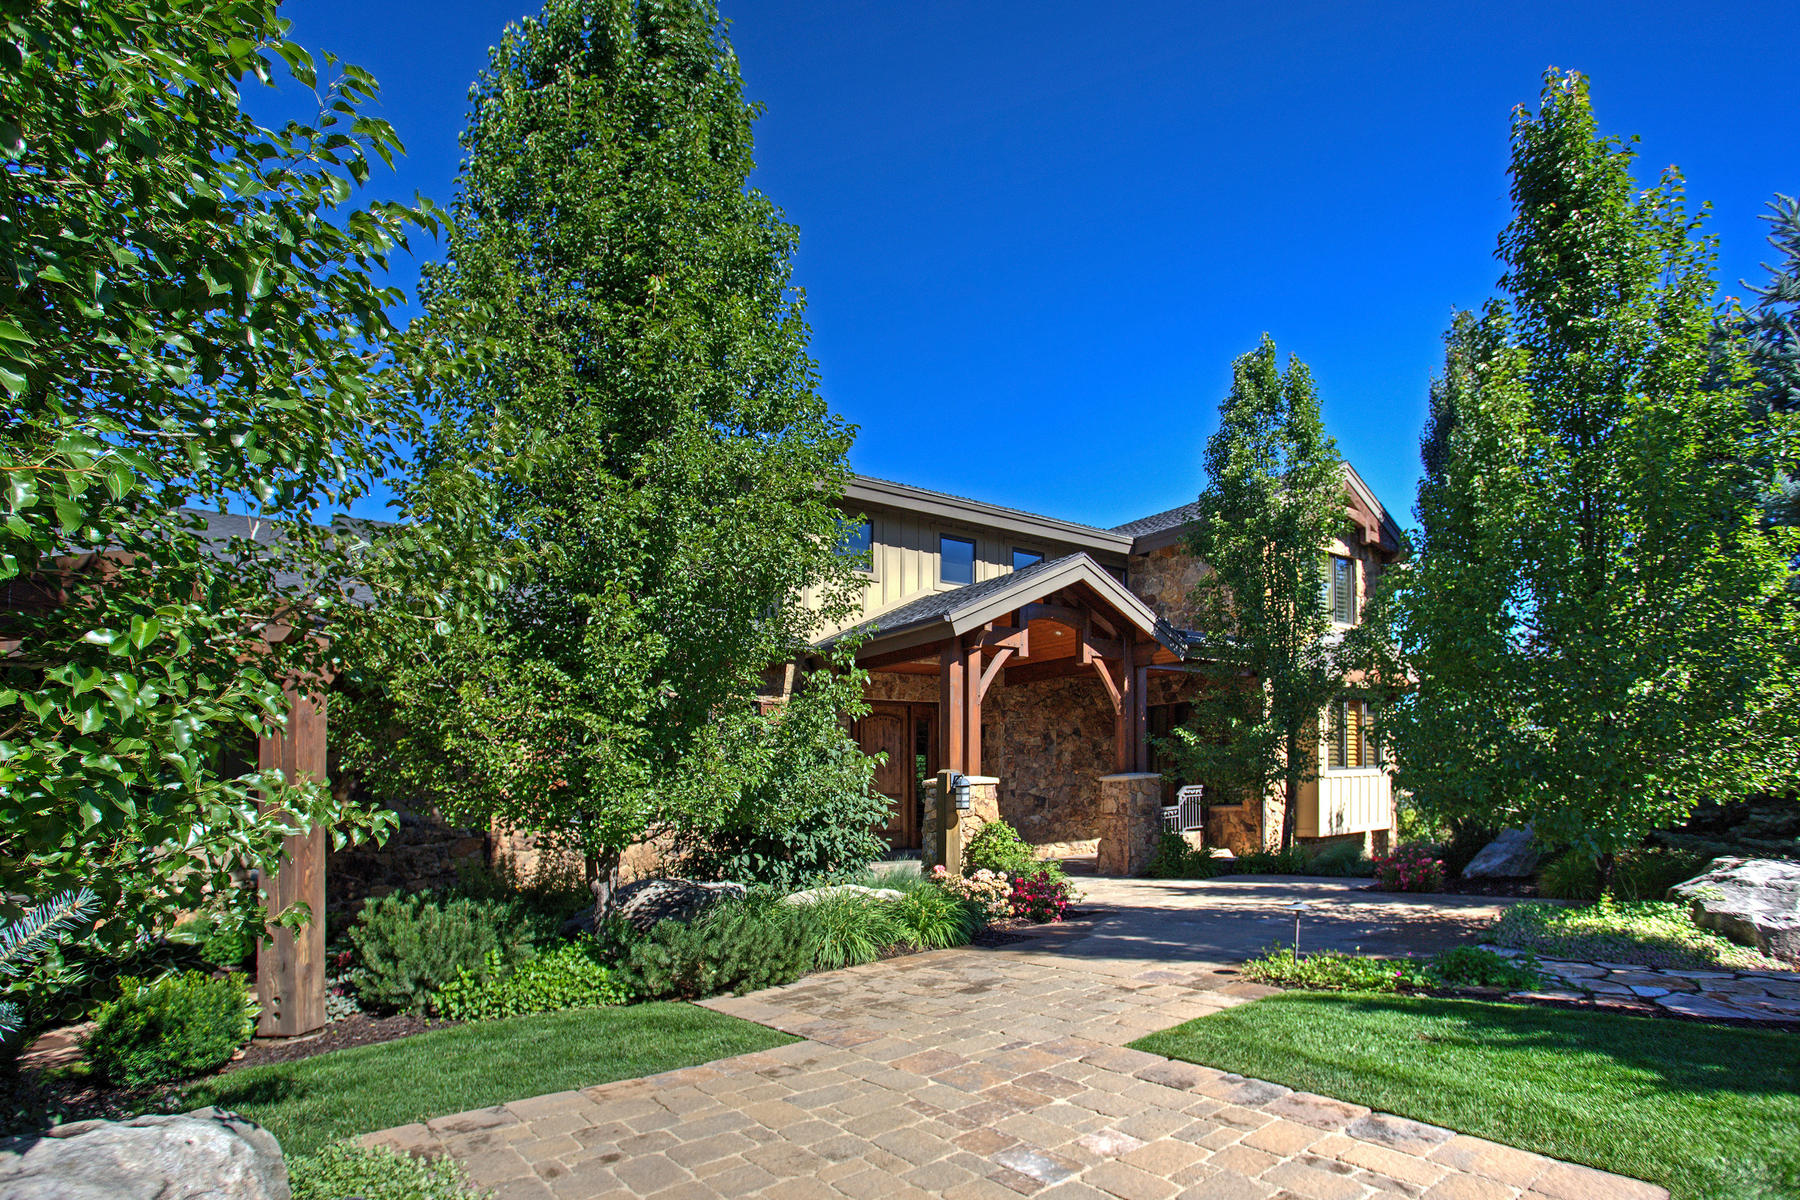 Casa Unifamiliar por un Venta en Spectacular Estate in Peterson, Utah 2907 N Ridges Rd Morgan, Utah, 84050 Estados Unidos